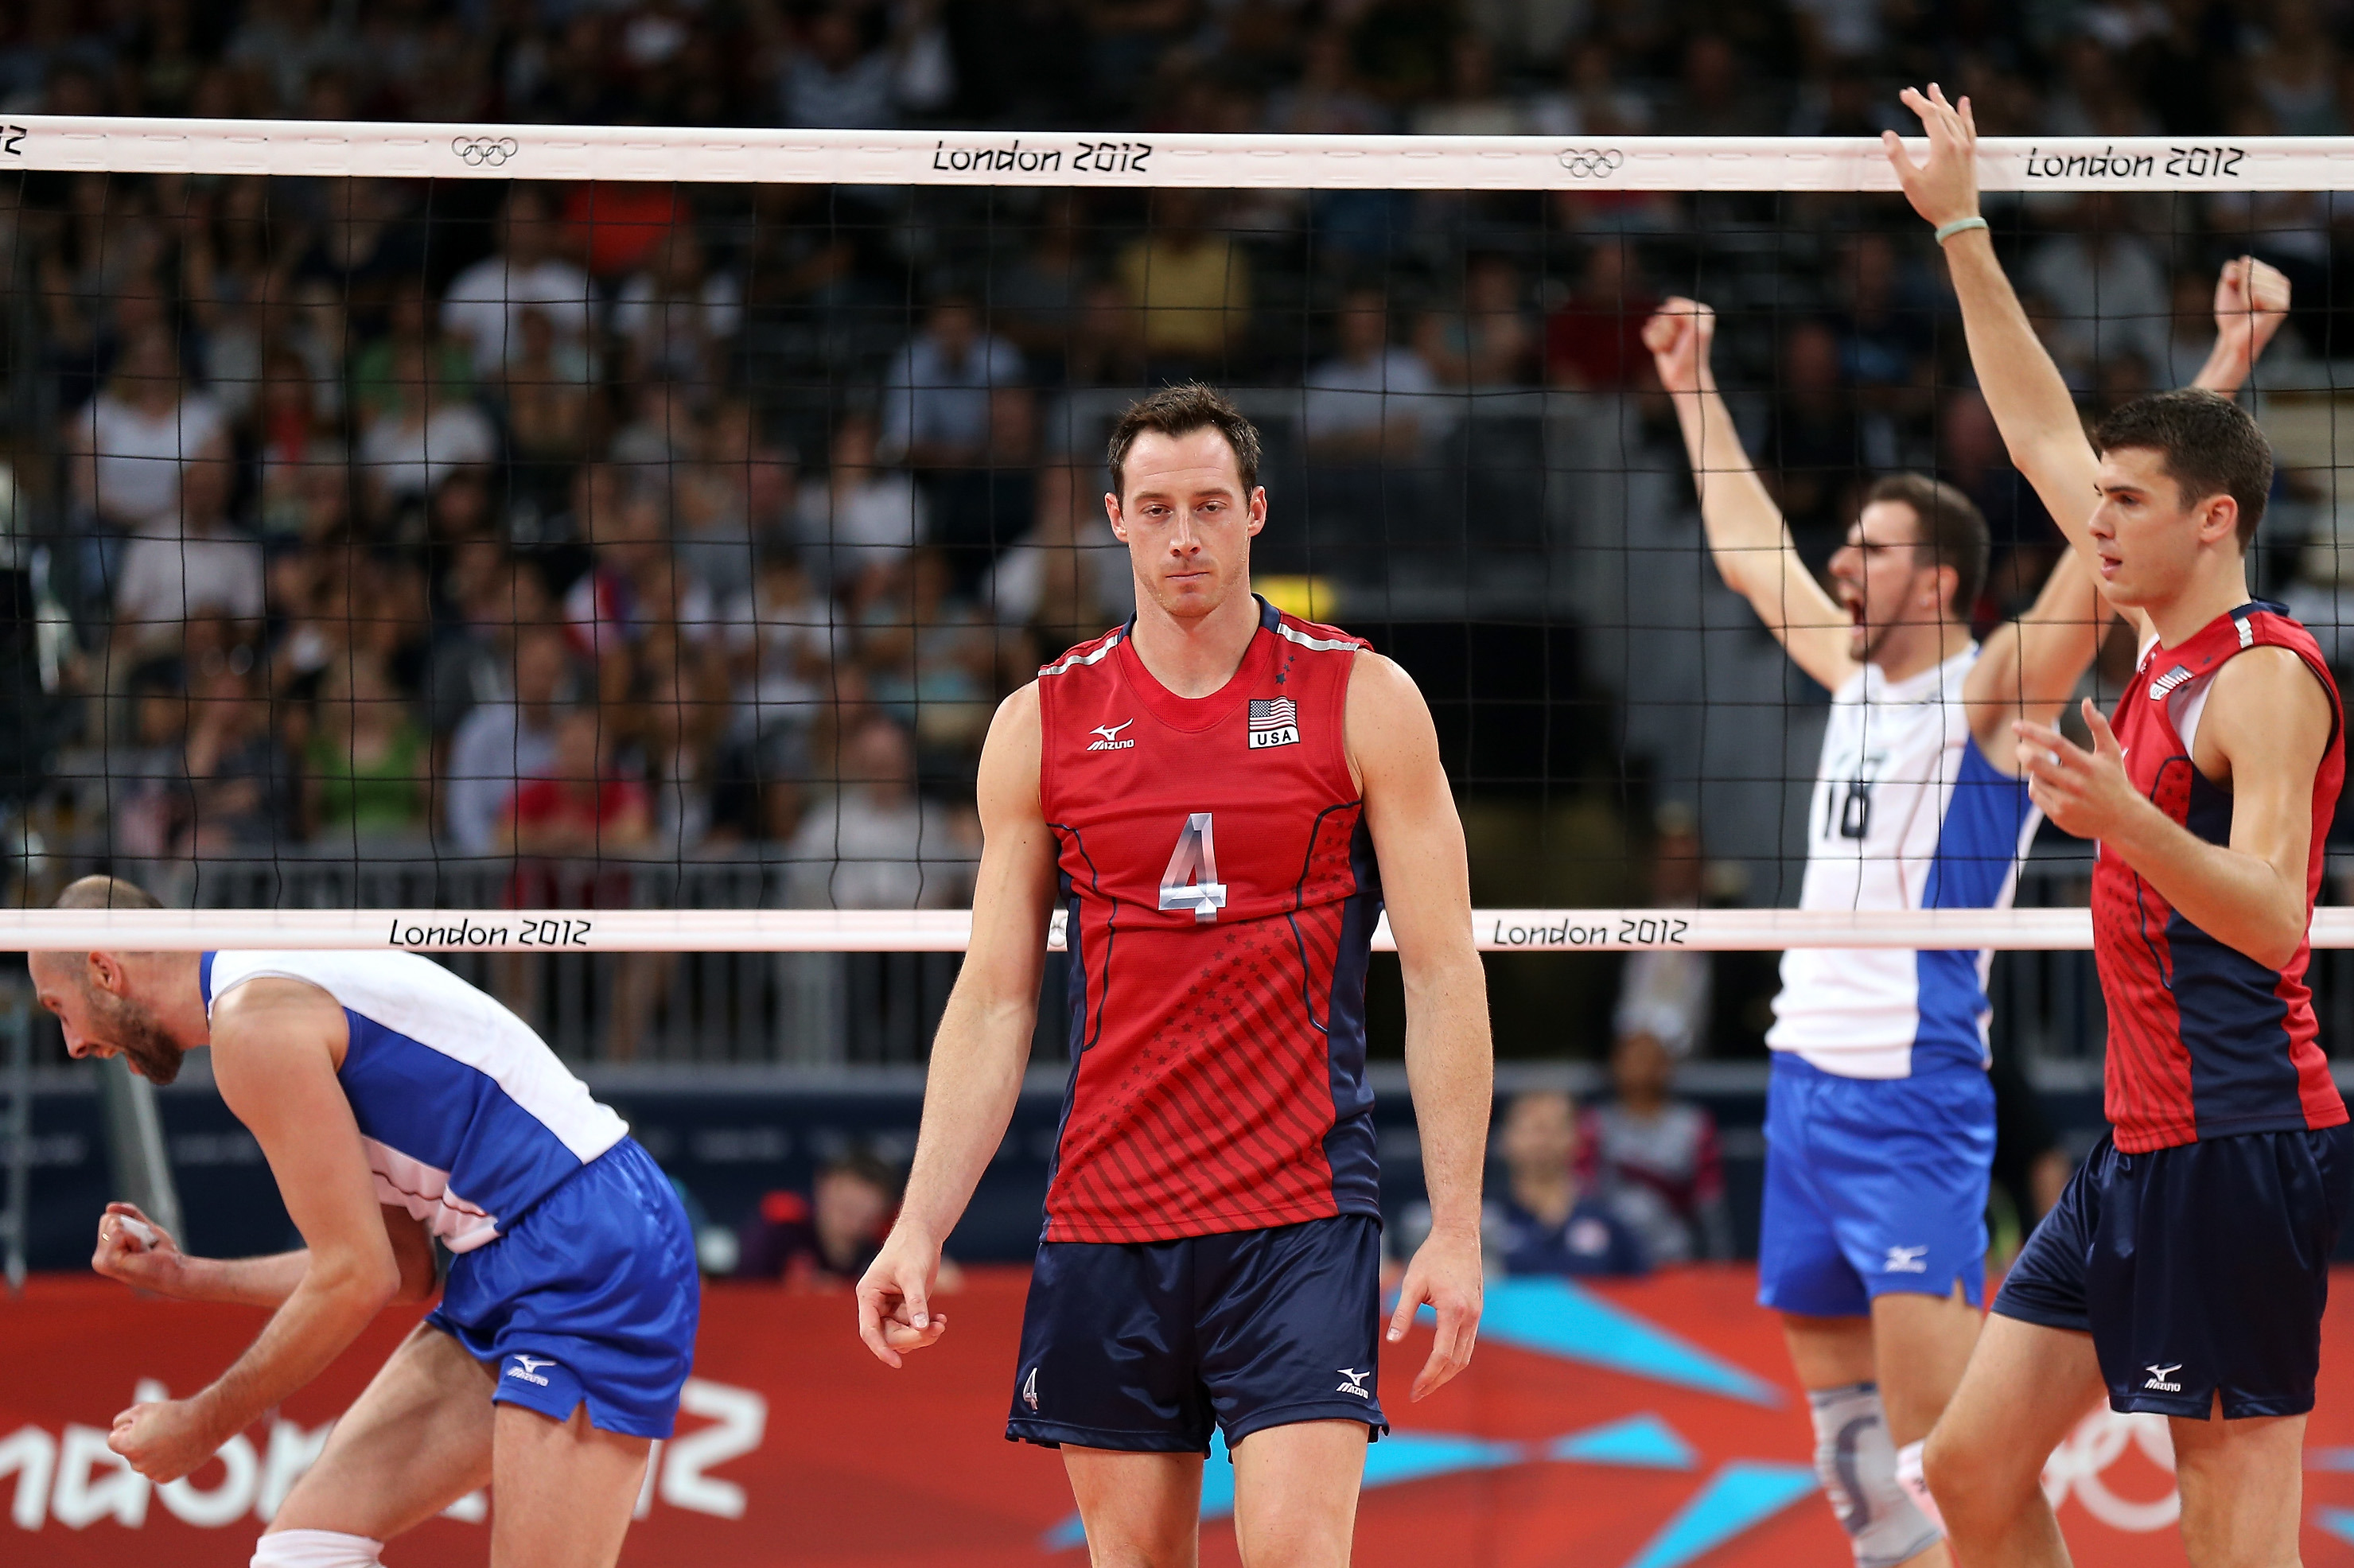 Olympic Volleyball 2012 American Men S Team Fails To Put Away Russia Bleacher Report Latest News Videos And Highlights